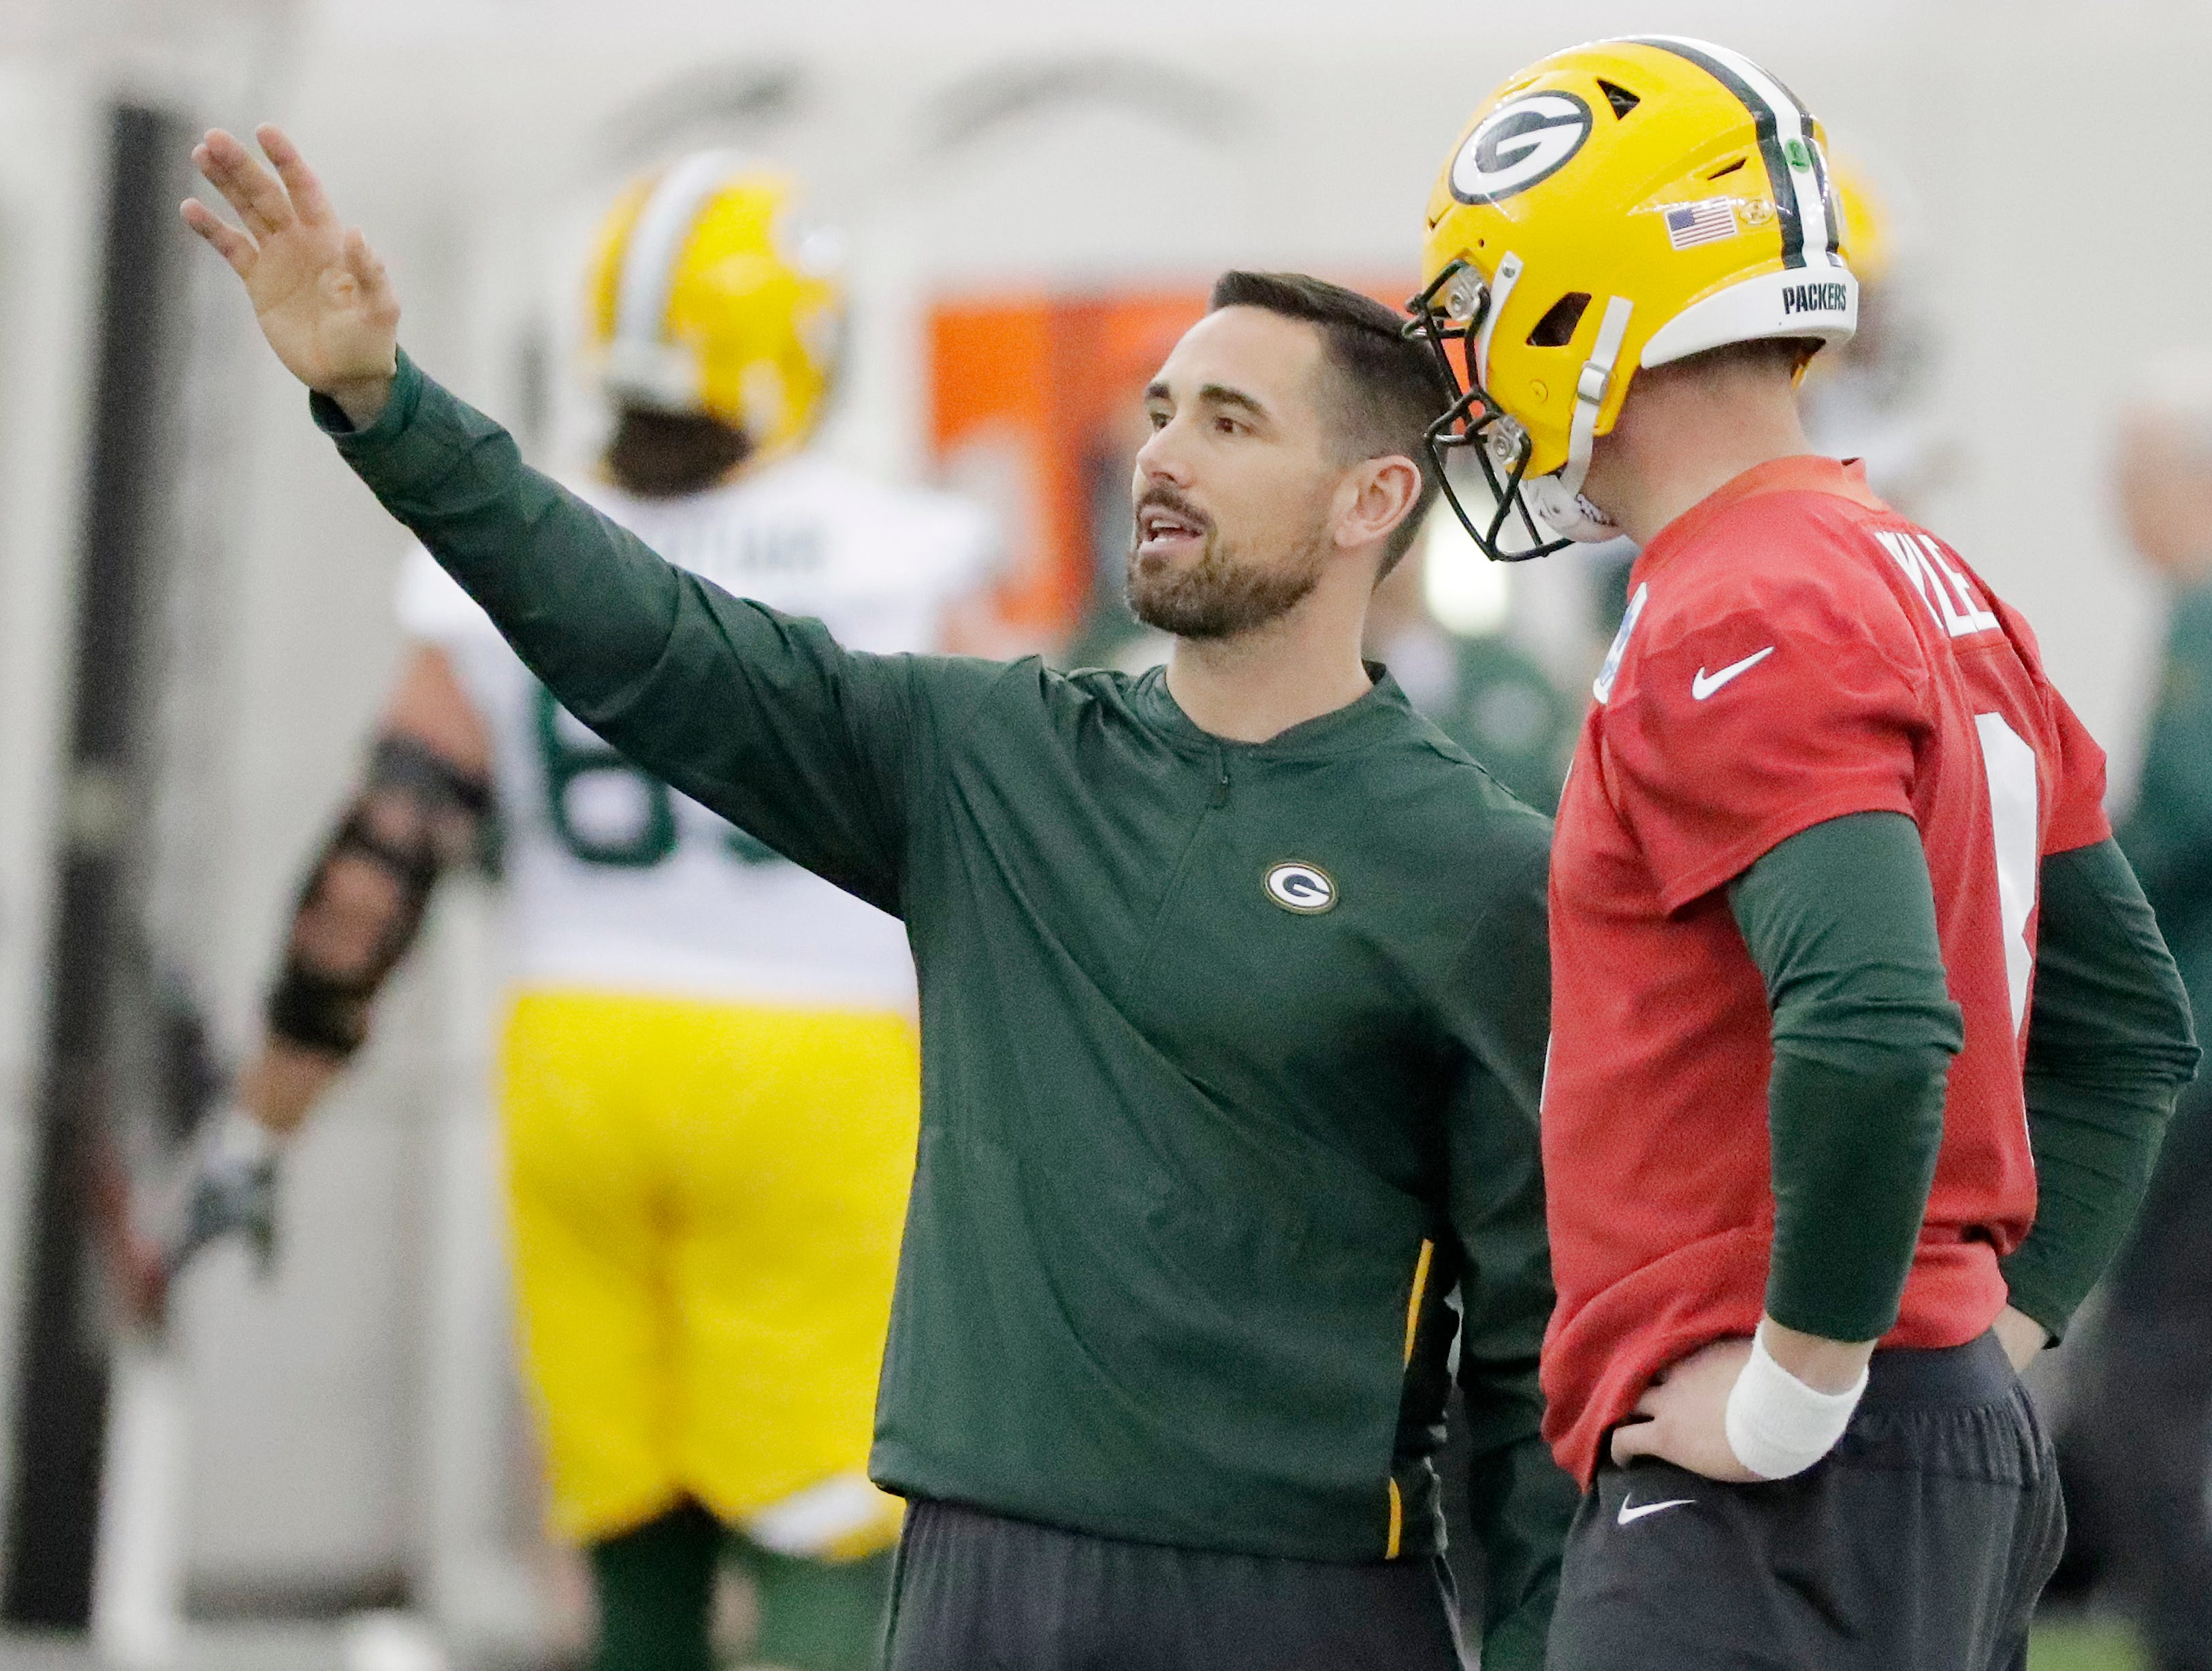 Green Bay Packers head coach Matt LaFleur talks to quarterback Tim Boyle (8) during a team practice at the Don Hutson Center on Wednesday, April 24, 2019 in Ashwaubenon, Wis.